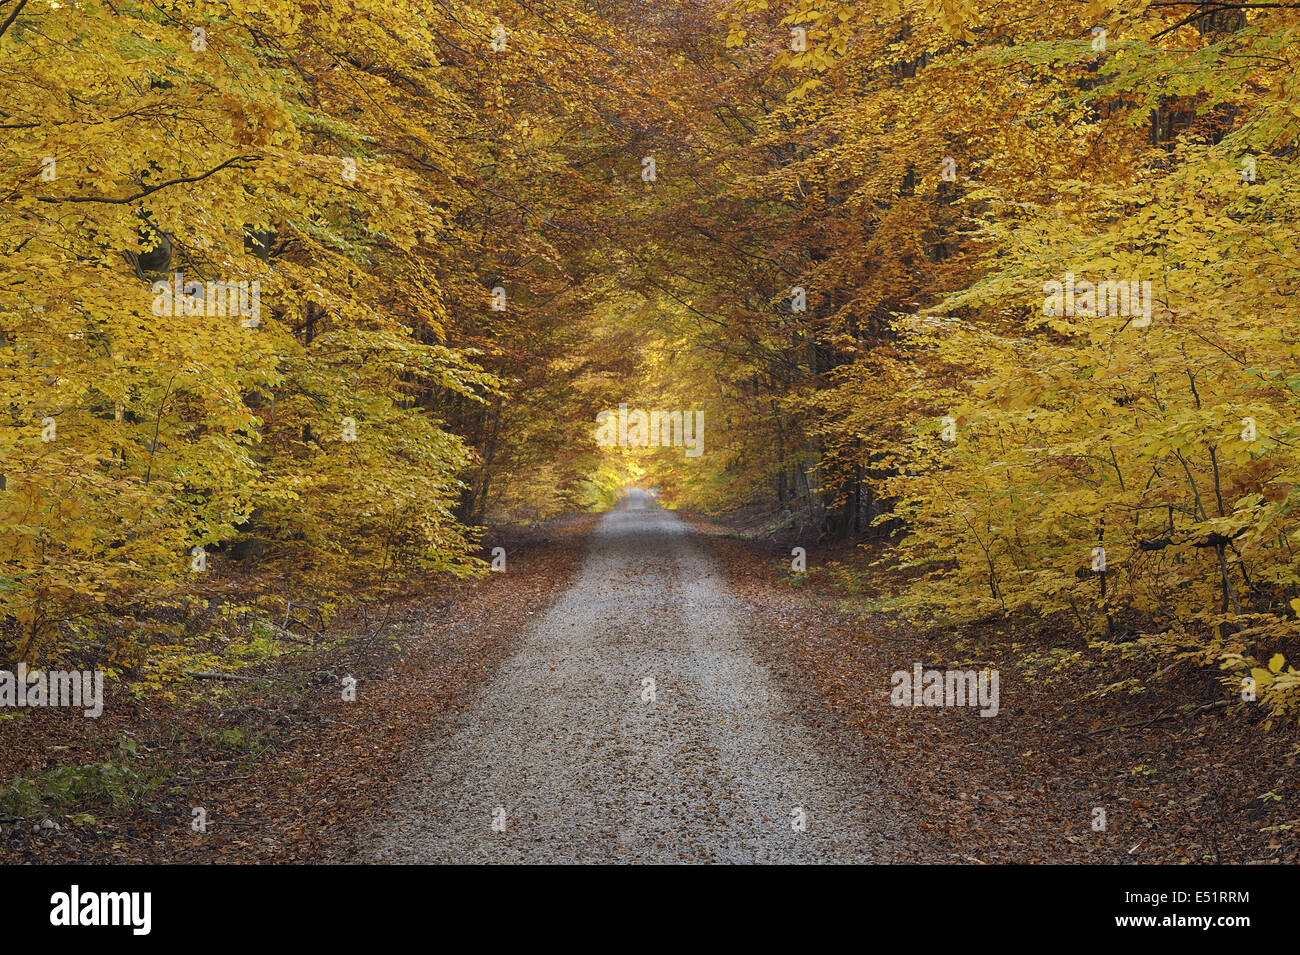 Path through Beech forest, Germany Stock Photo